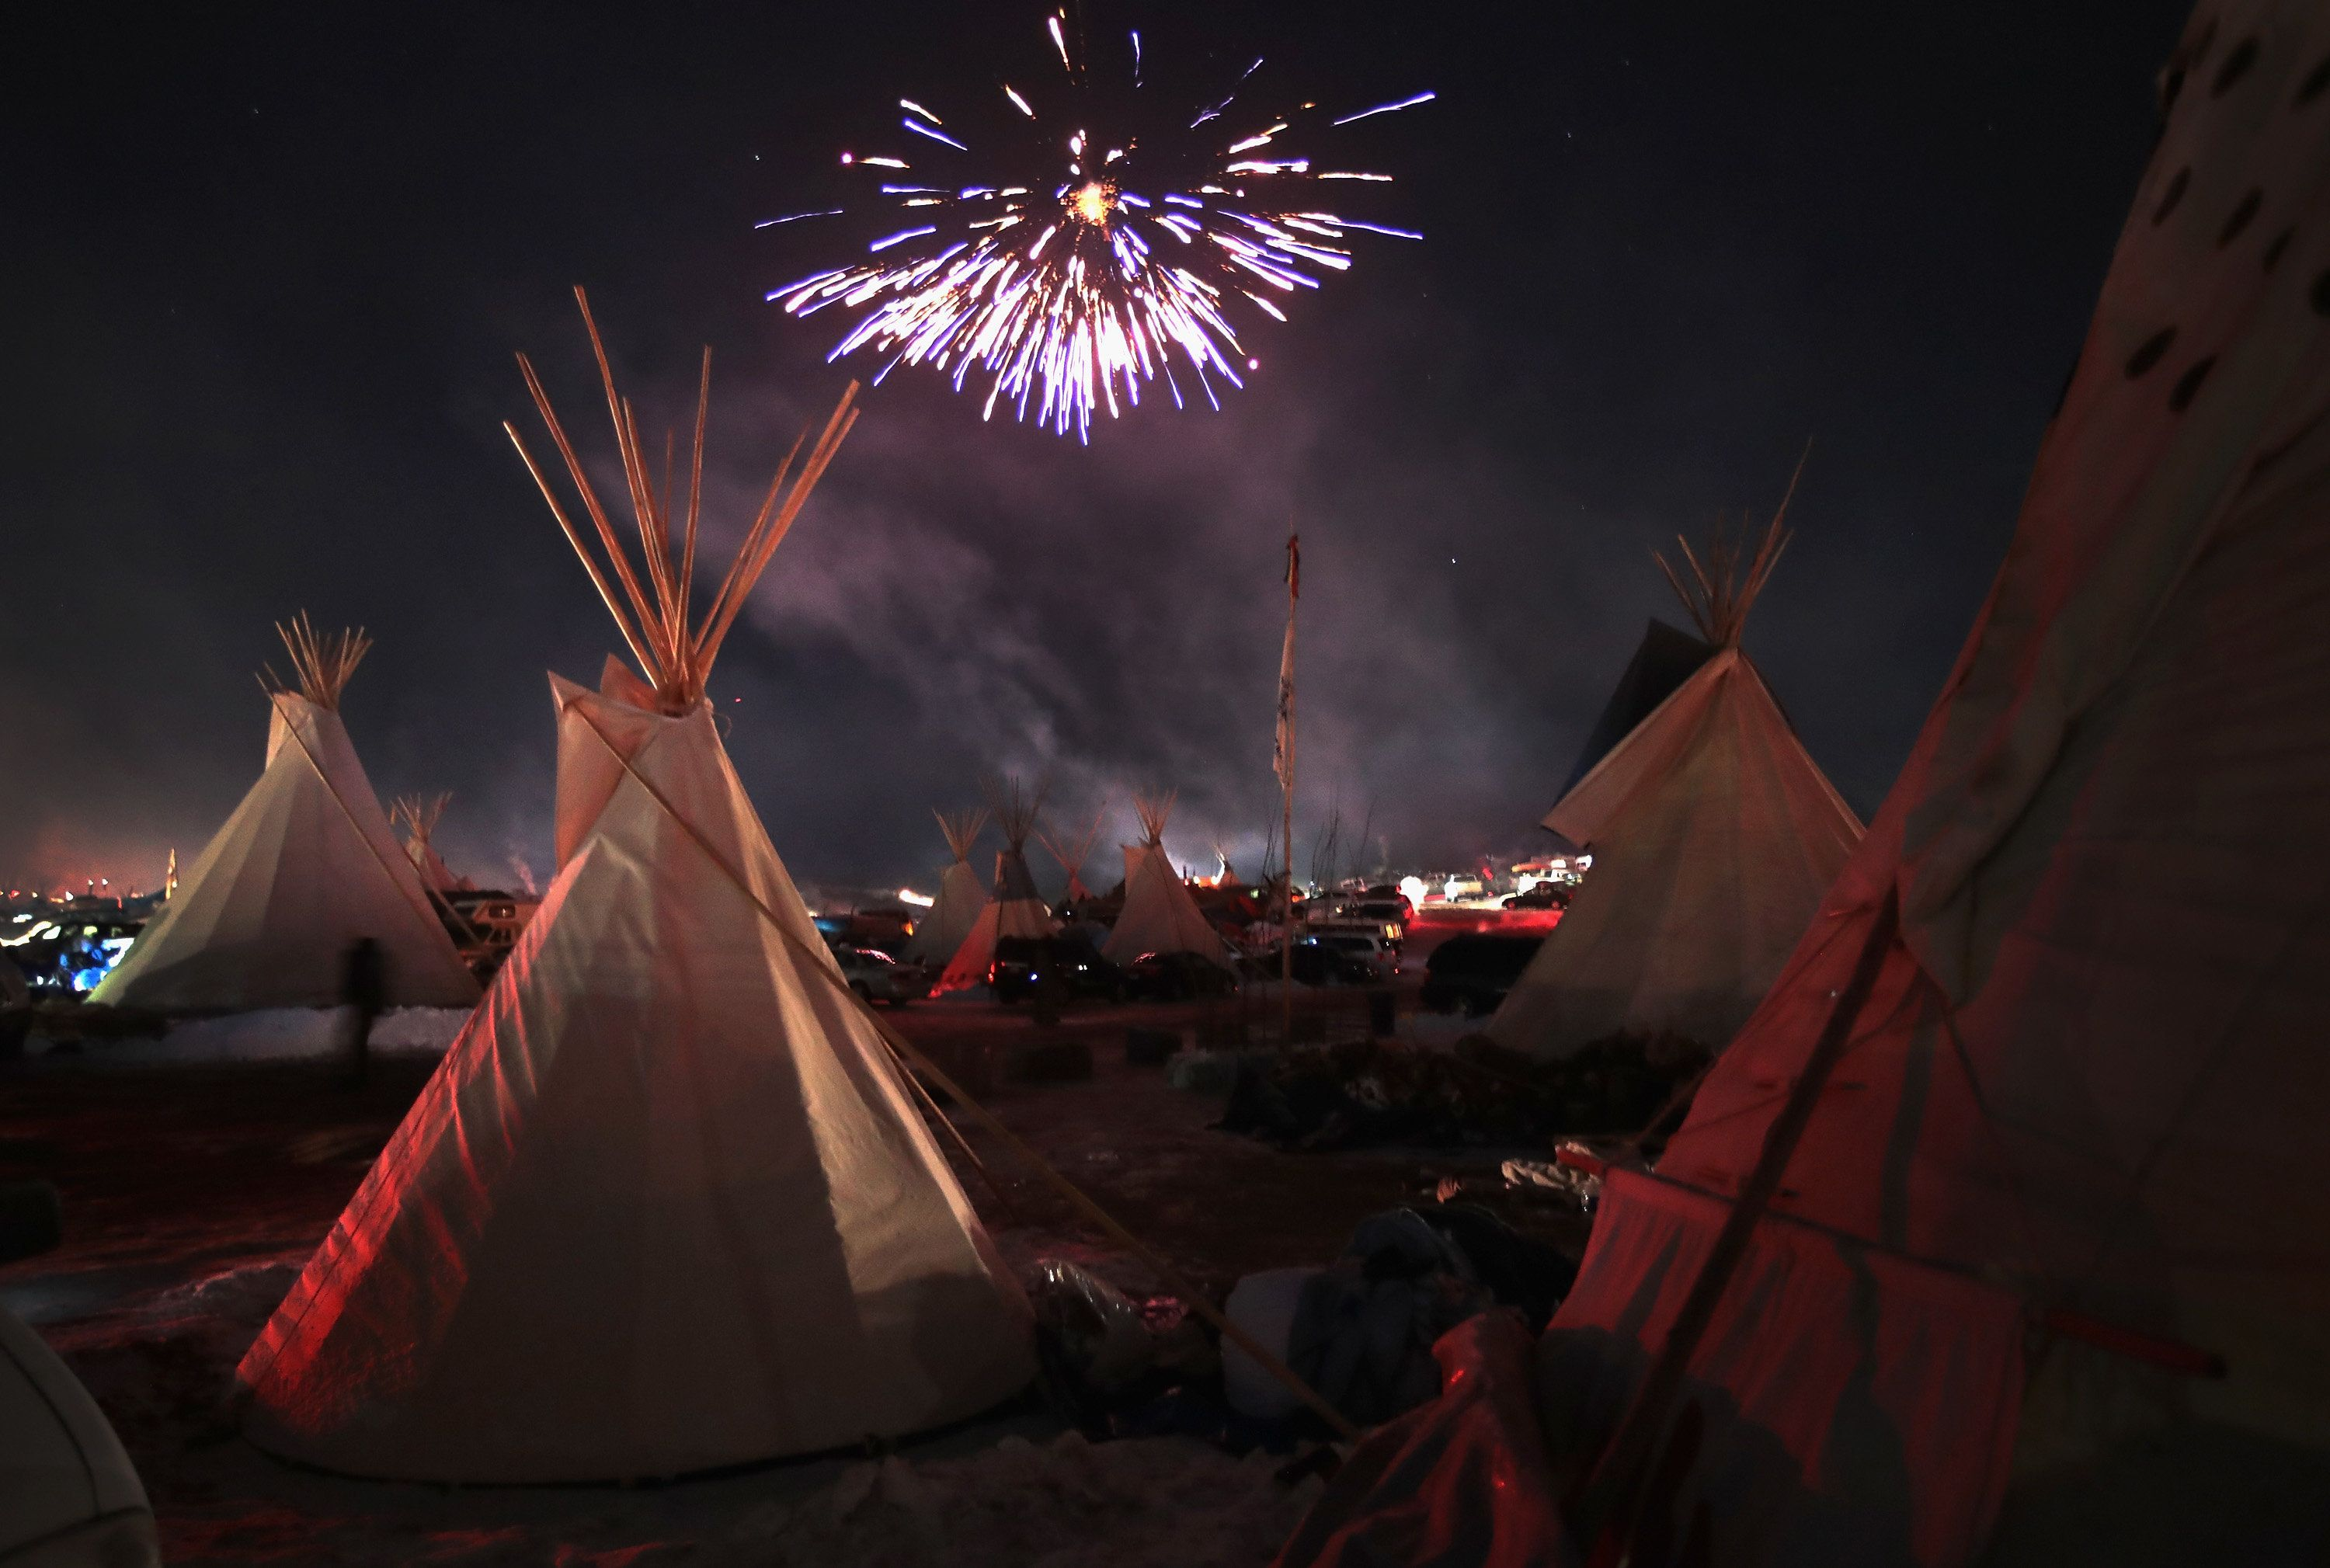 Fireworks fill the night sky above Oceti Sakowin Camp as activists celebrate after learning an easement had been denied for t